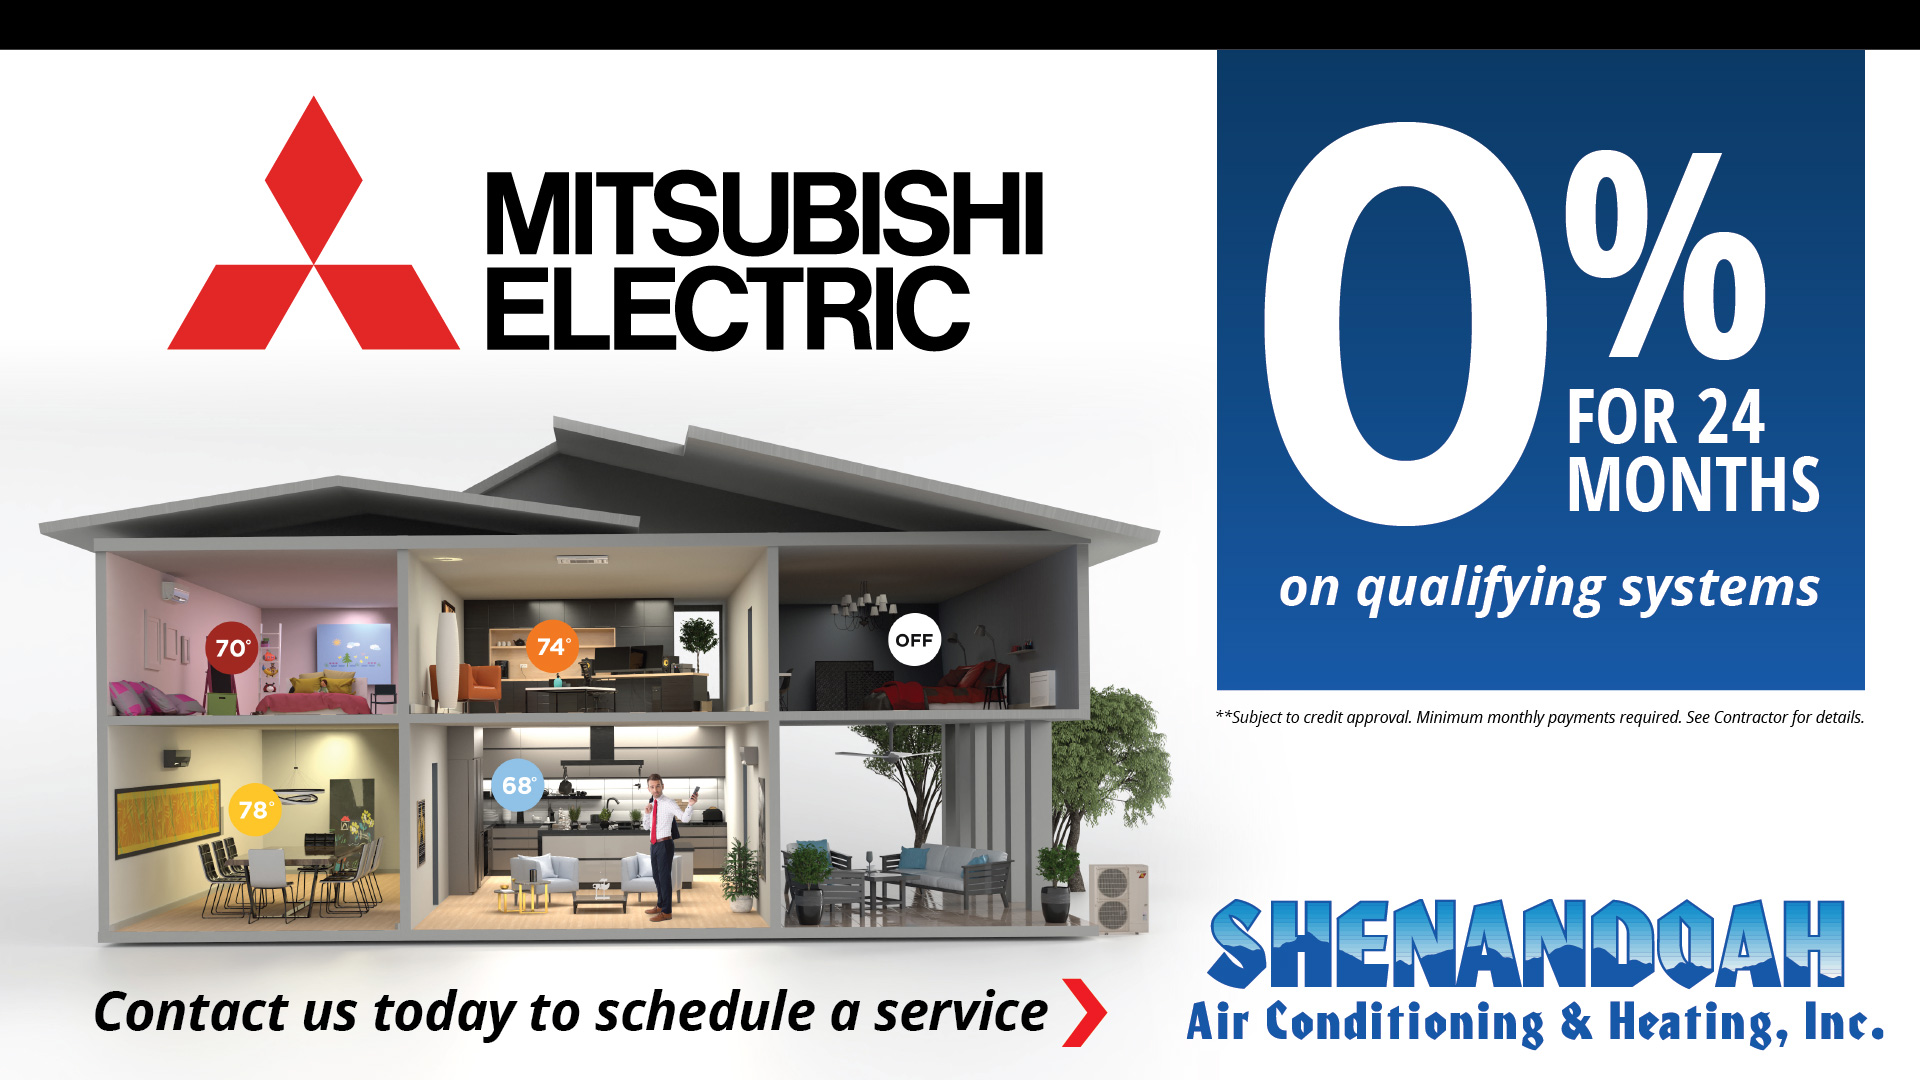 Mitsubishi 0% Financing for 24 months srcset=